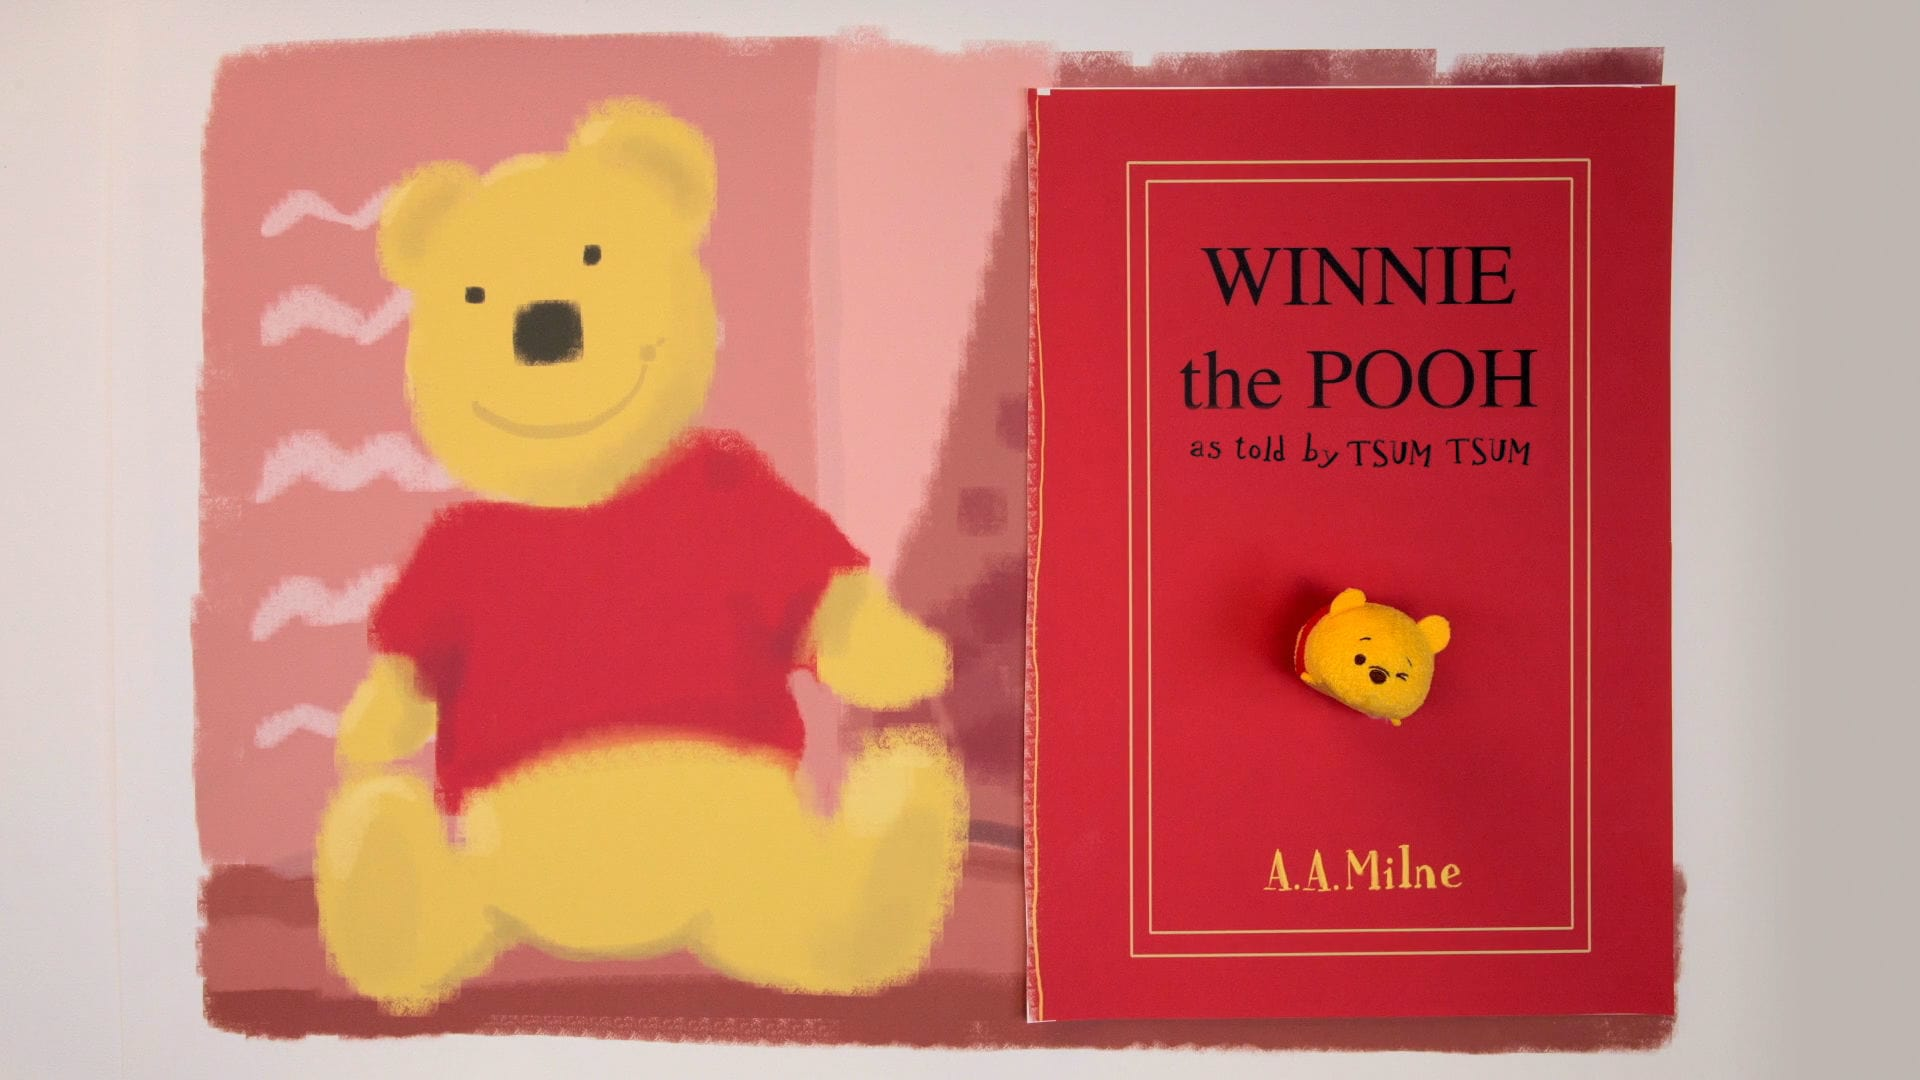 Winnie the Pooh 2011 - As Told By Tsum Tsum